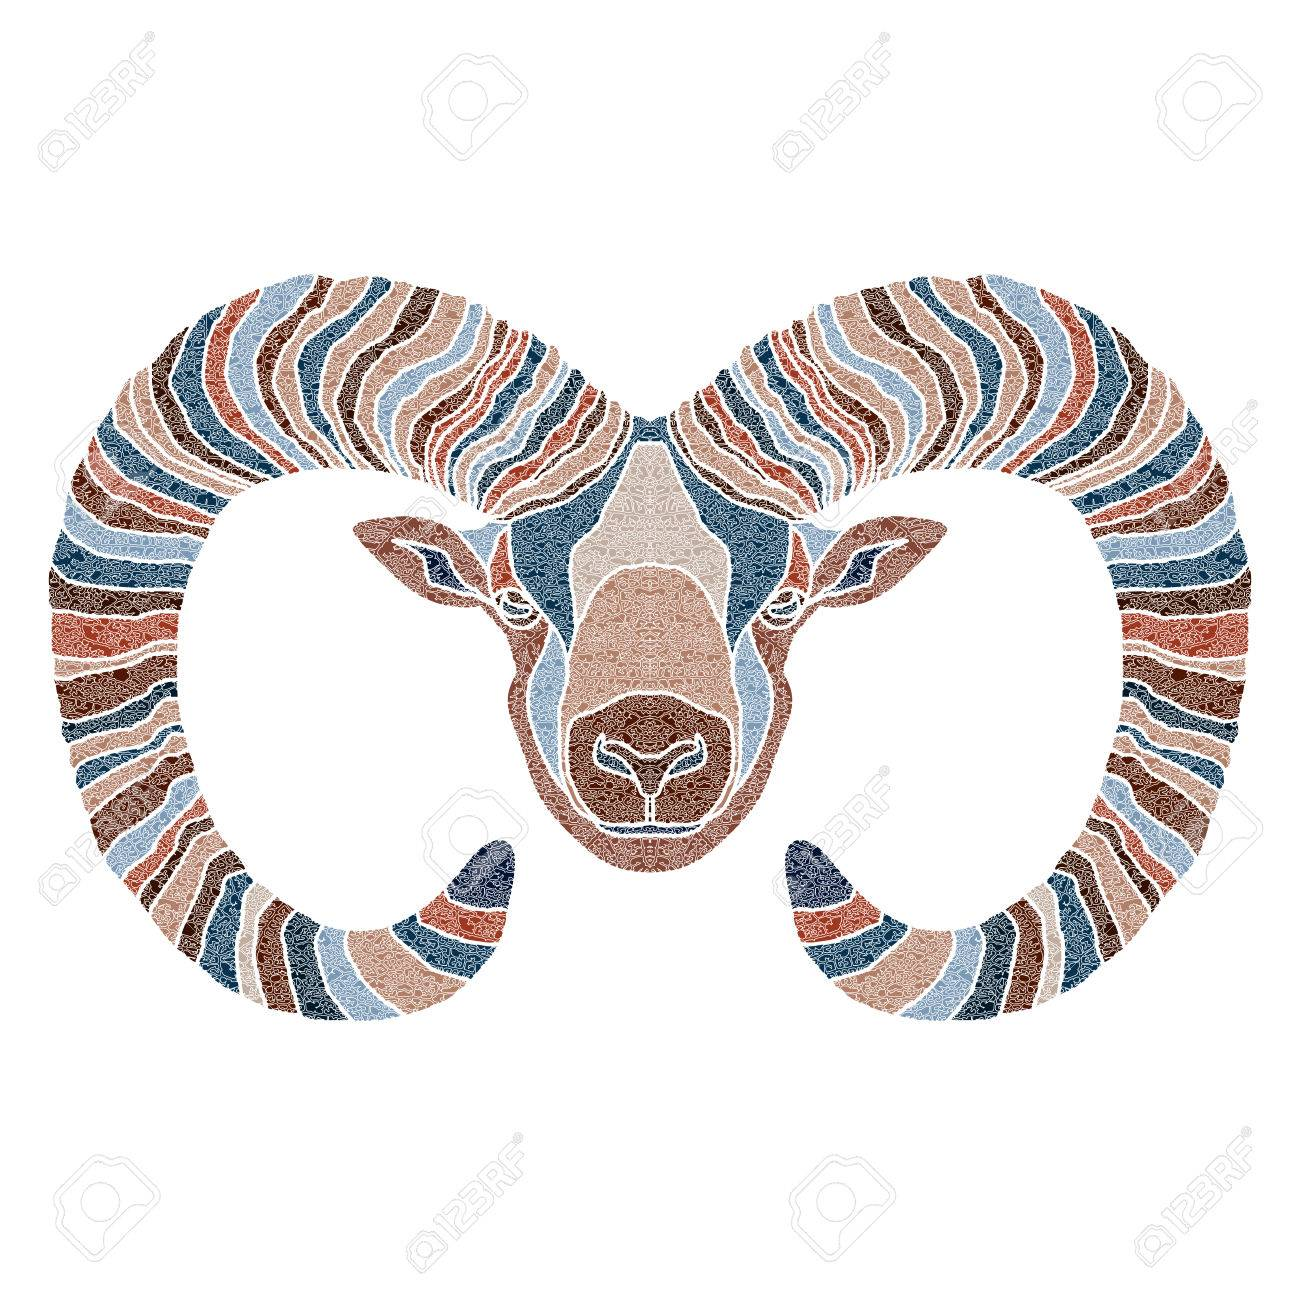 Bright patterned Ram, Aries sign for astrological predestination